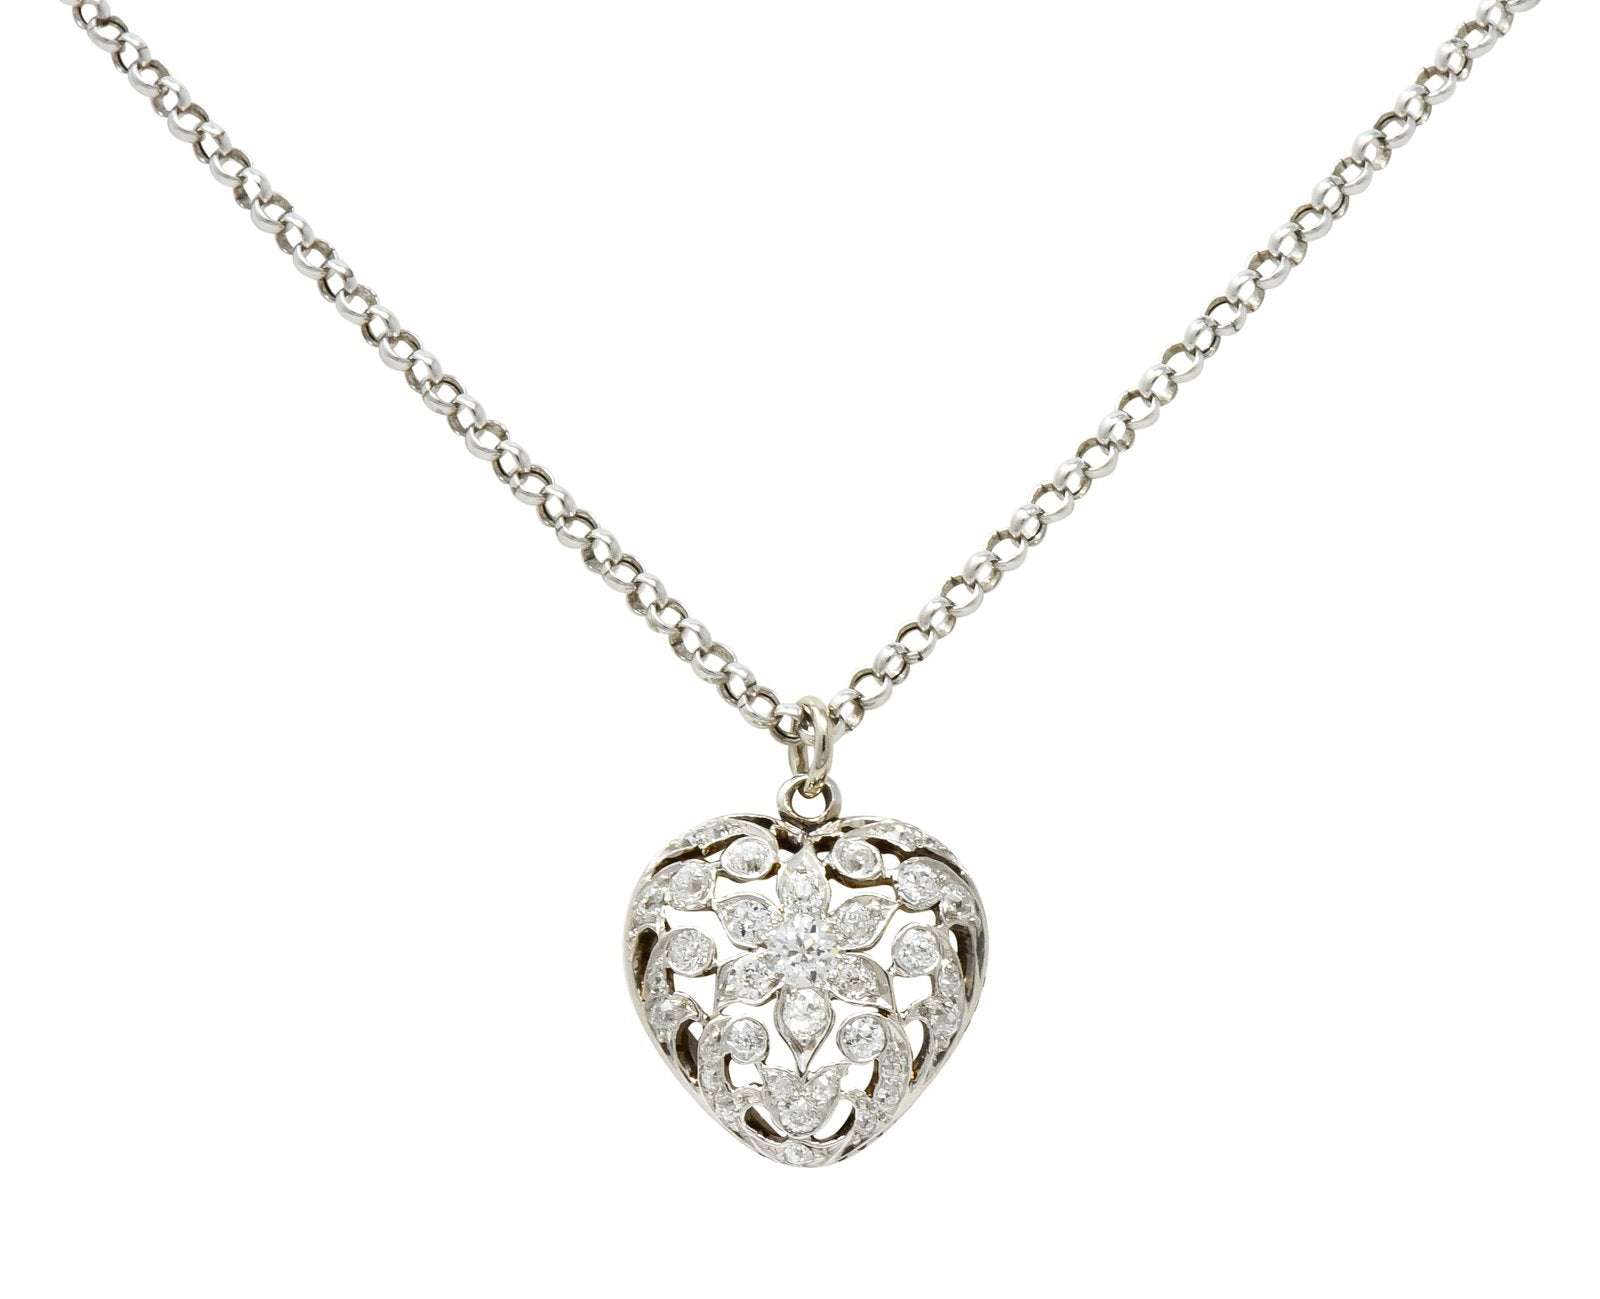 Edwardian Pave Diamond Heart Necklace Platinum